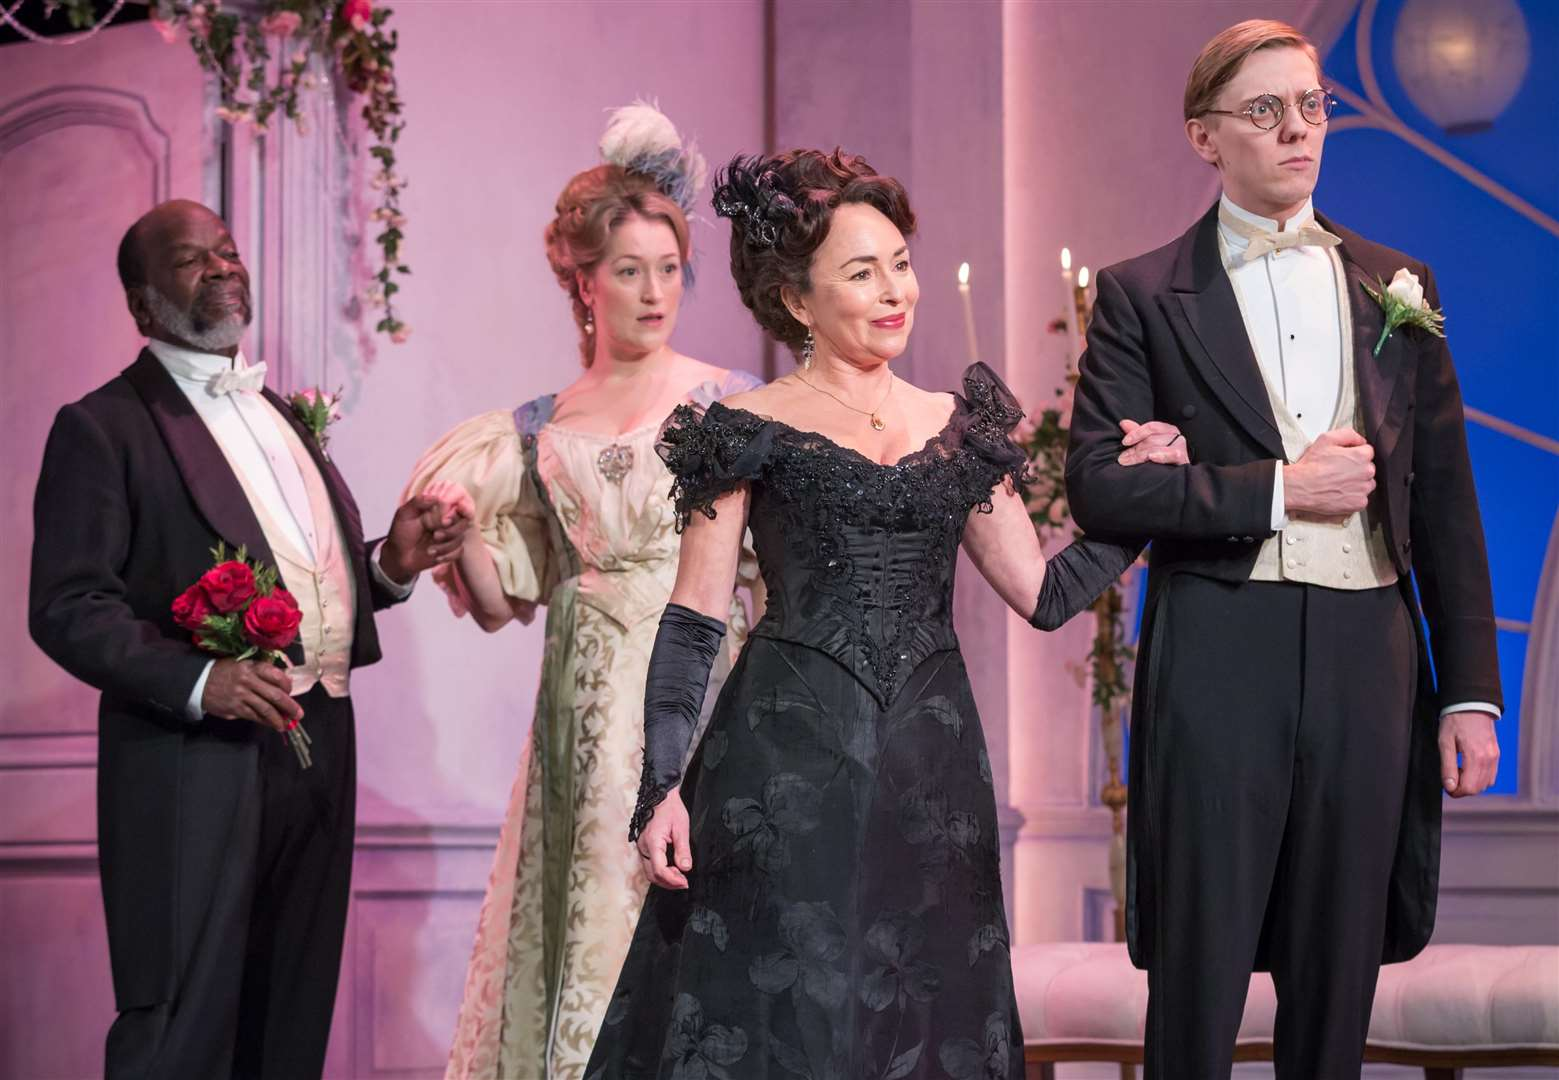 Joseph Marcell (Lord Lorton), Victoria Blunt (Mrs Cowper-Cowper), Samantha Spiro (Mrs Erlynne) and Joshua James (Lord Windermere) in Lady Windermere's Fan, part of Oscar Wilde Season LIVE at the Vaudeville Theatre, London. Photo by Marc Brennar. (3497906)